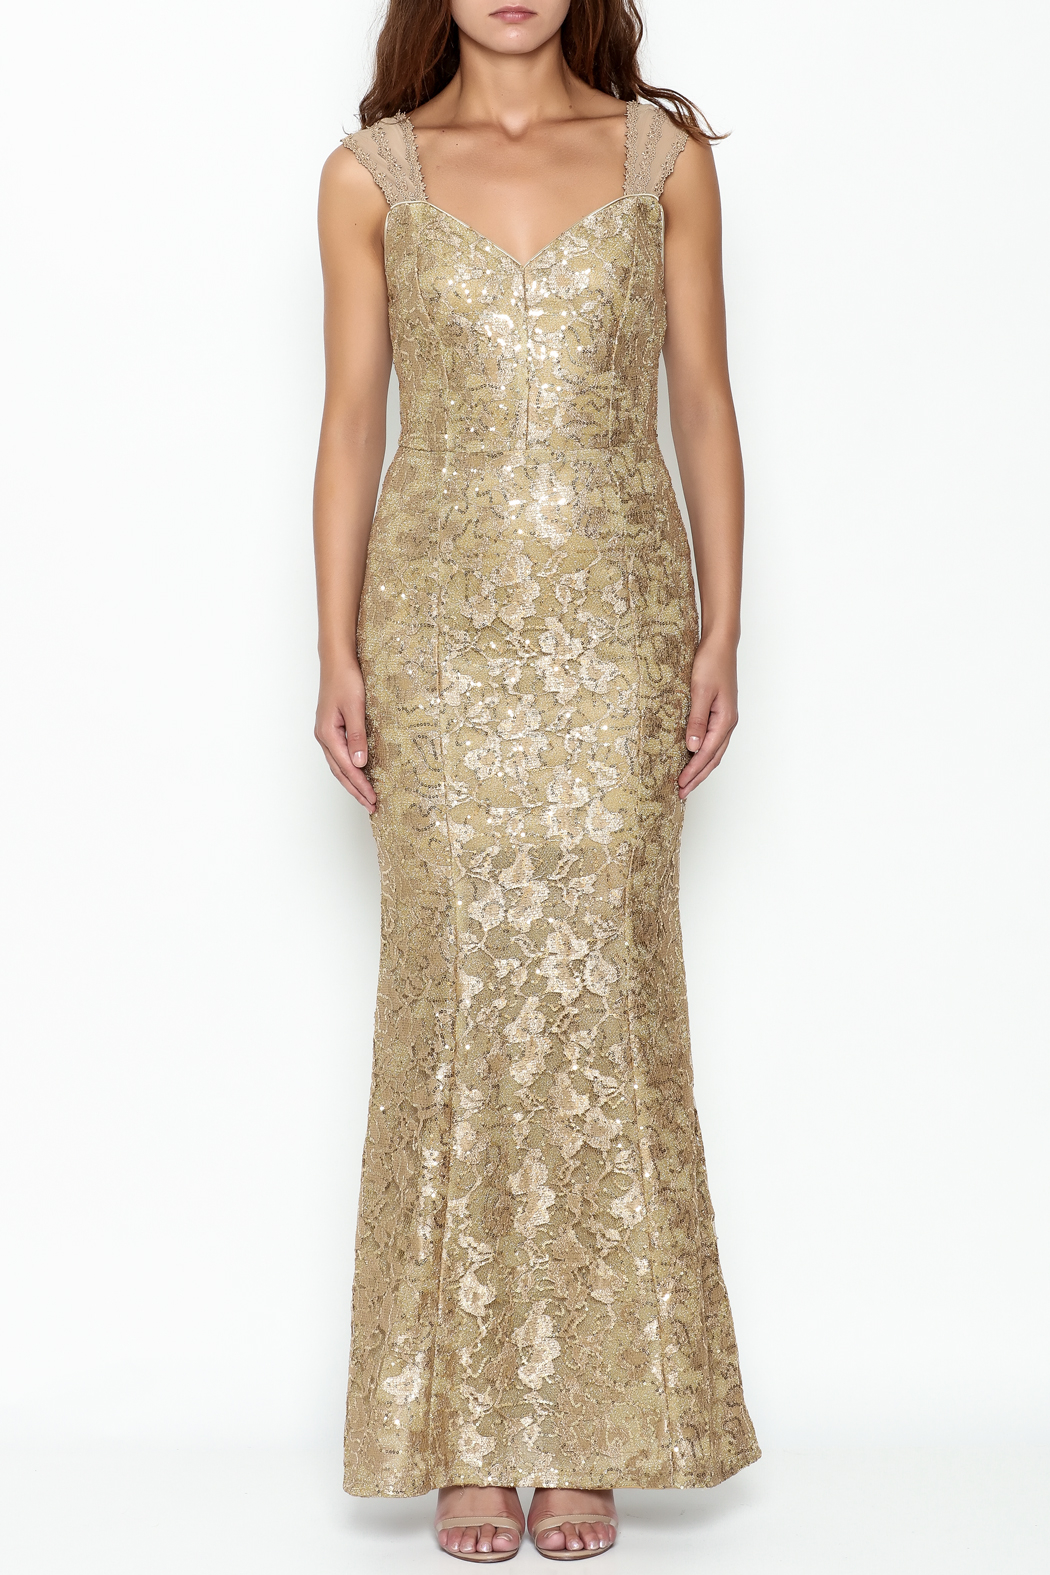 Nikibiki Gold Lace Dress - Front Full Image